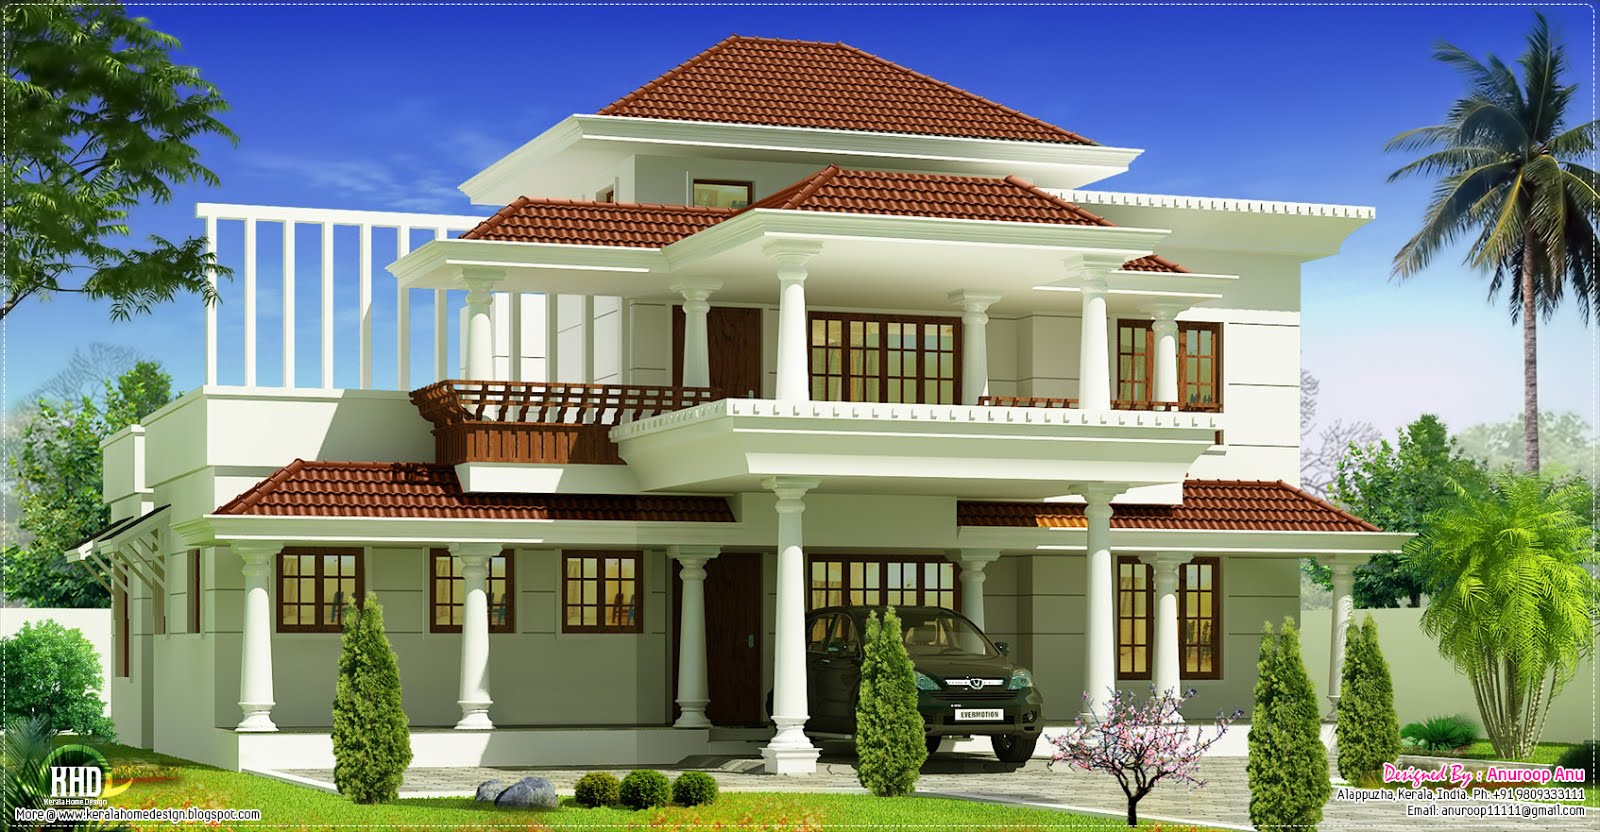 January 2013 Kerala Home Design And Floor Plans: new build house designs